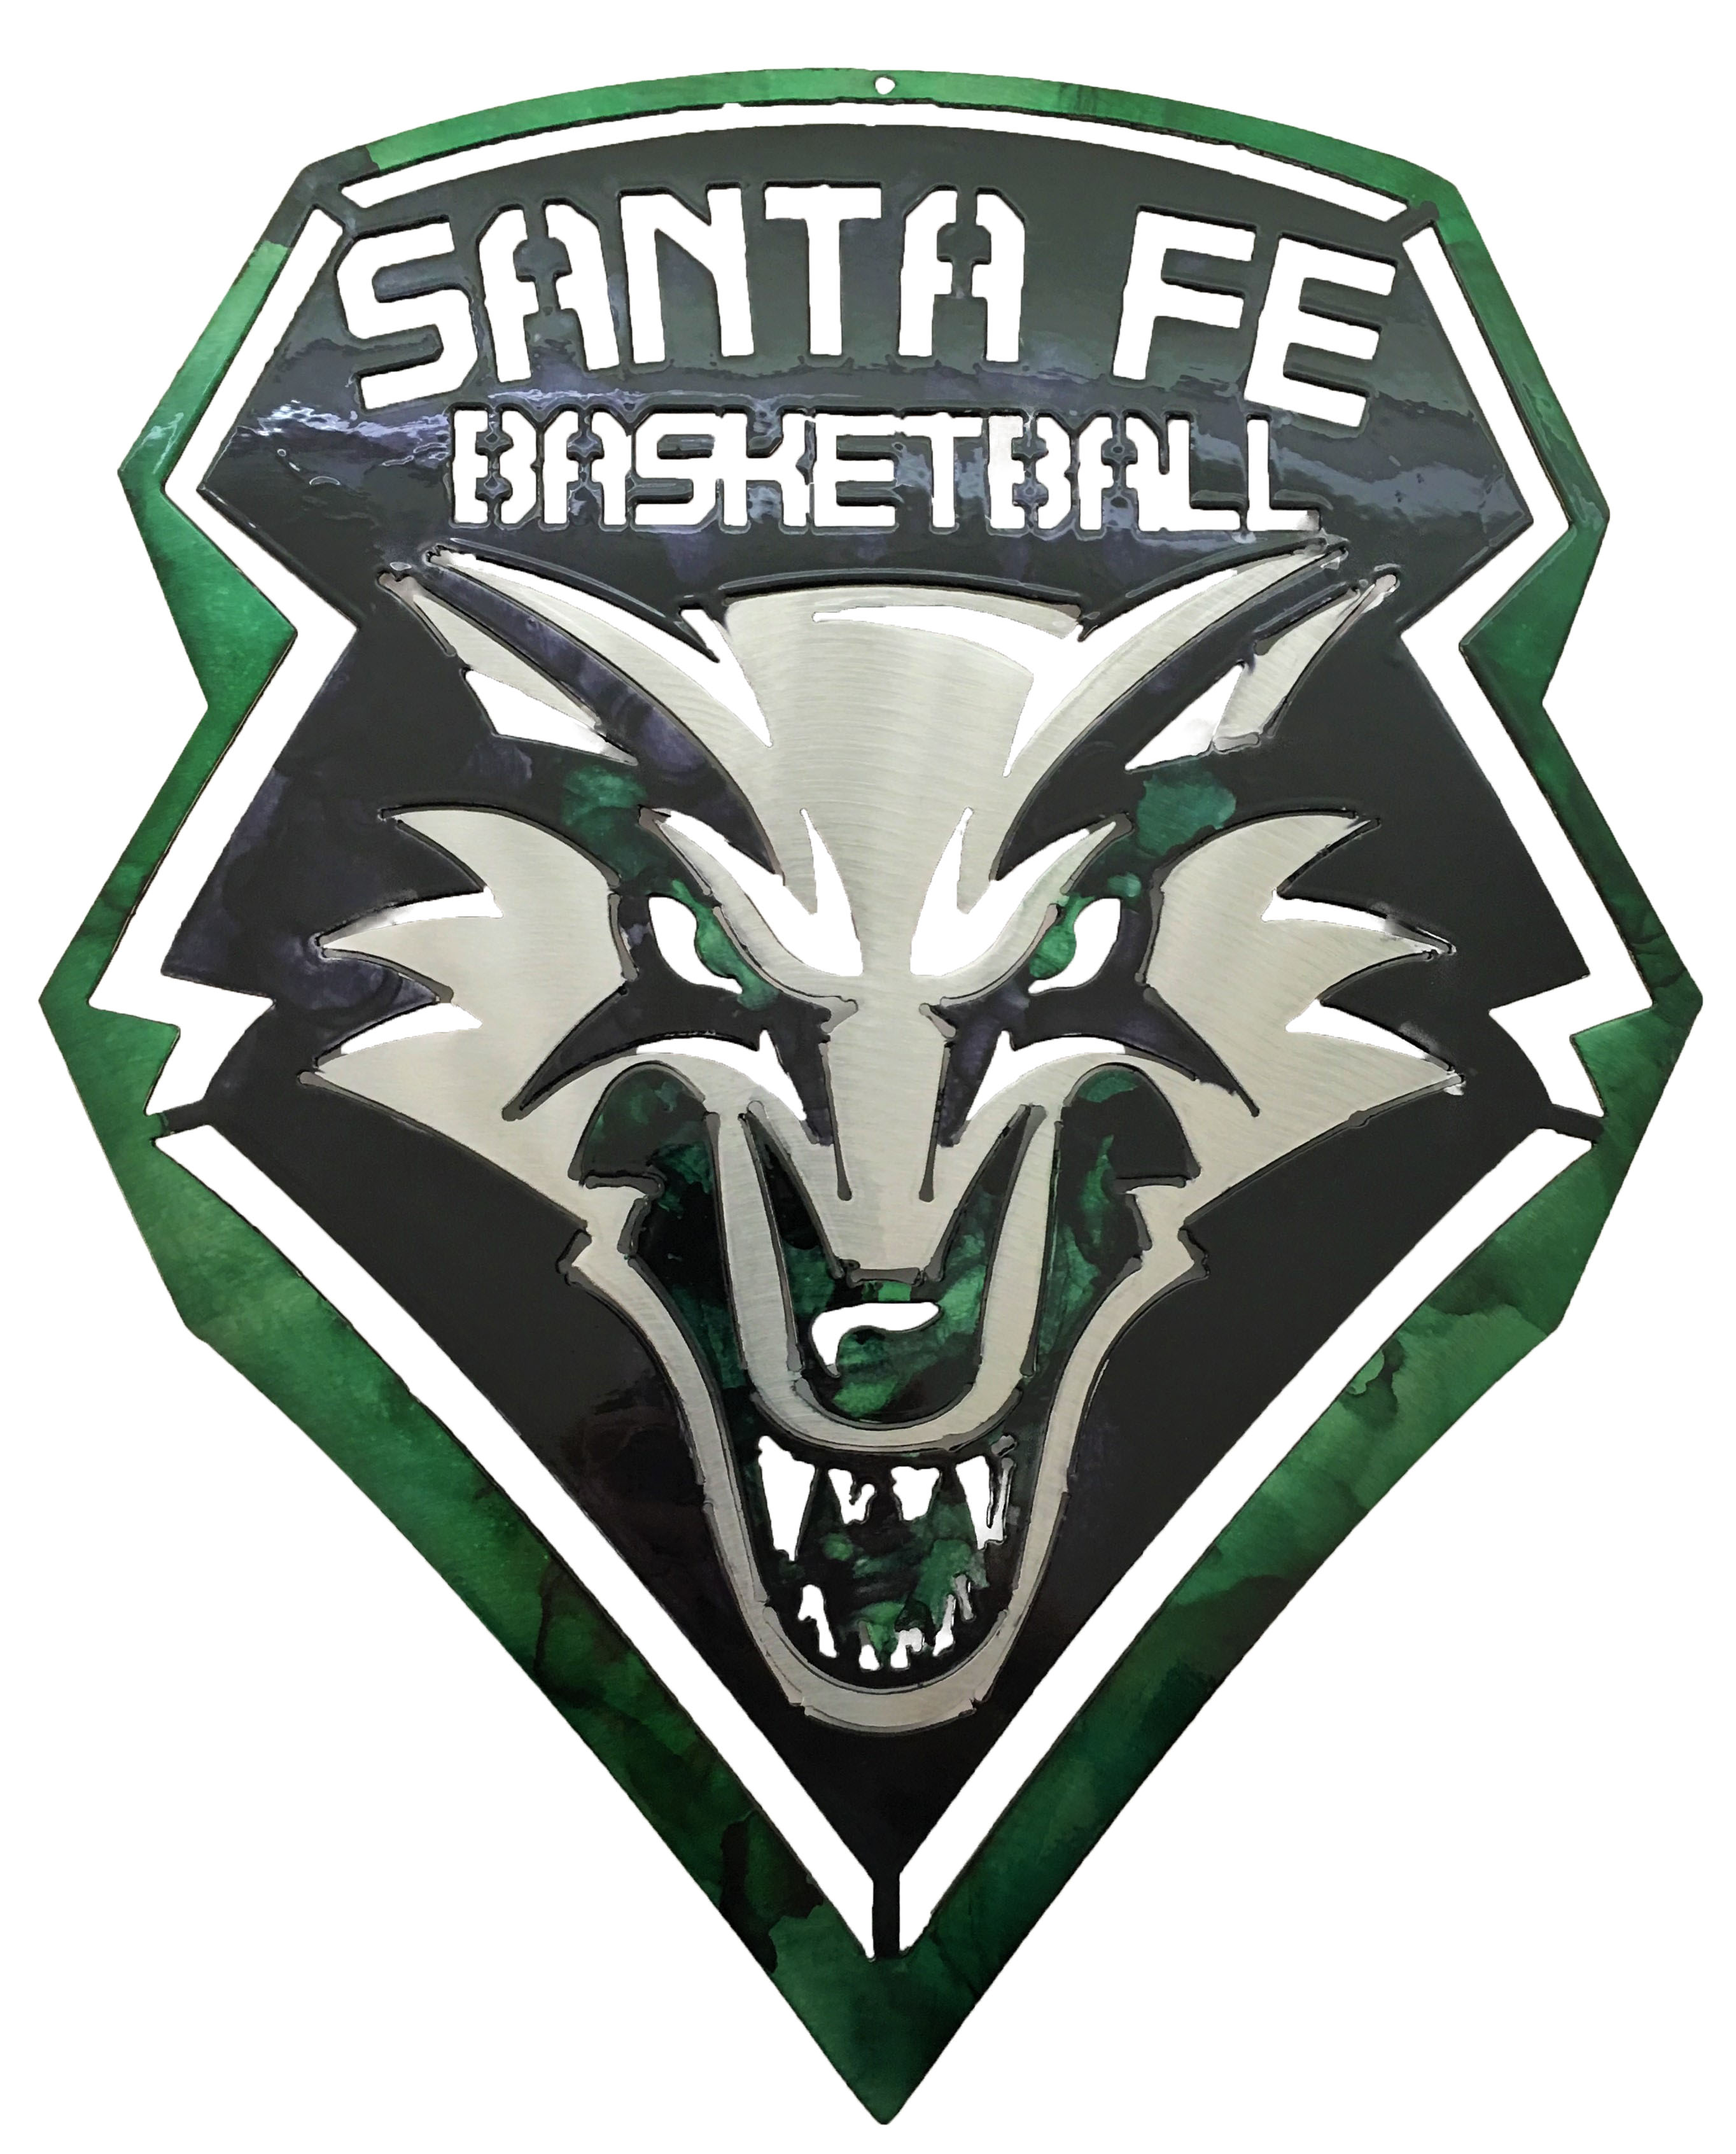 Santa Fe Basketball_Custom_Edited